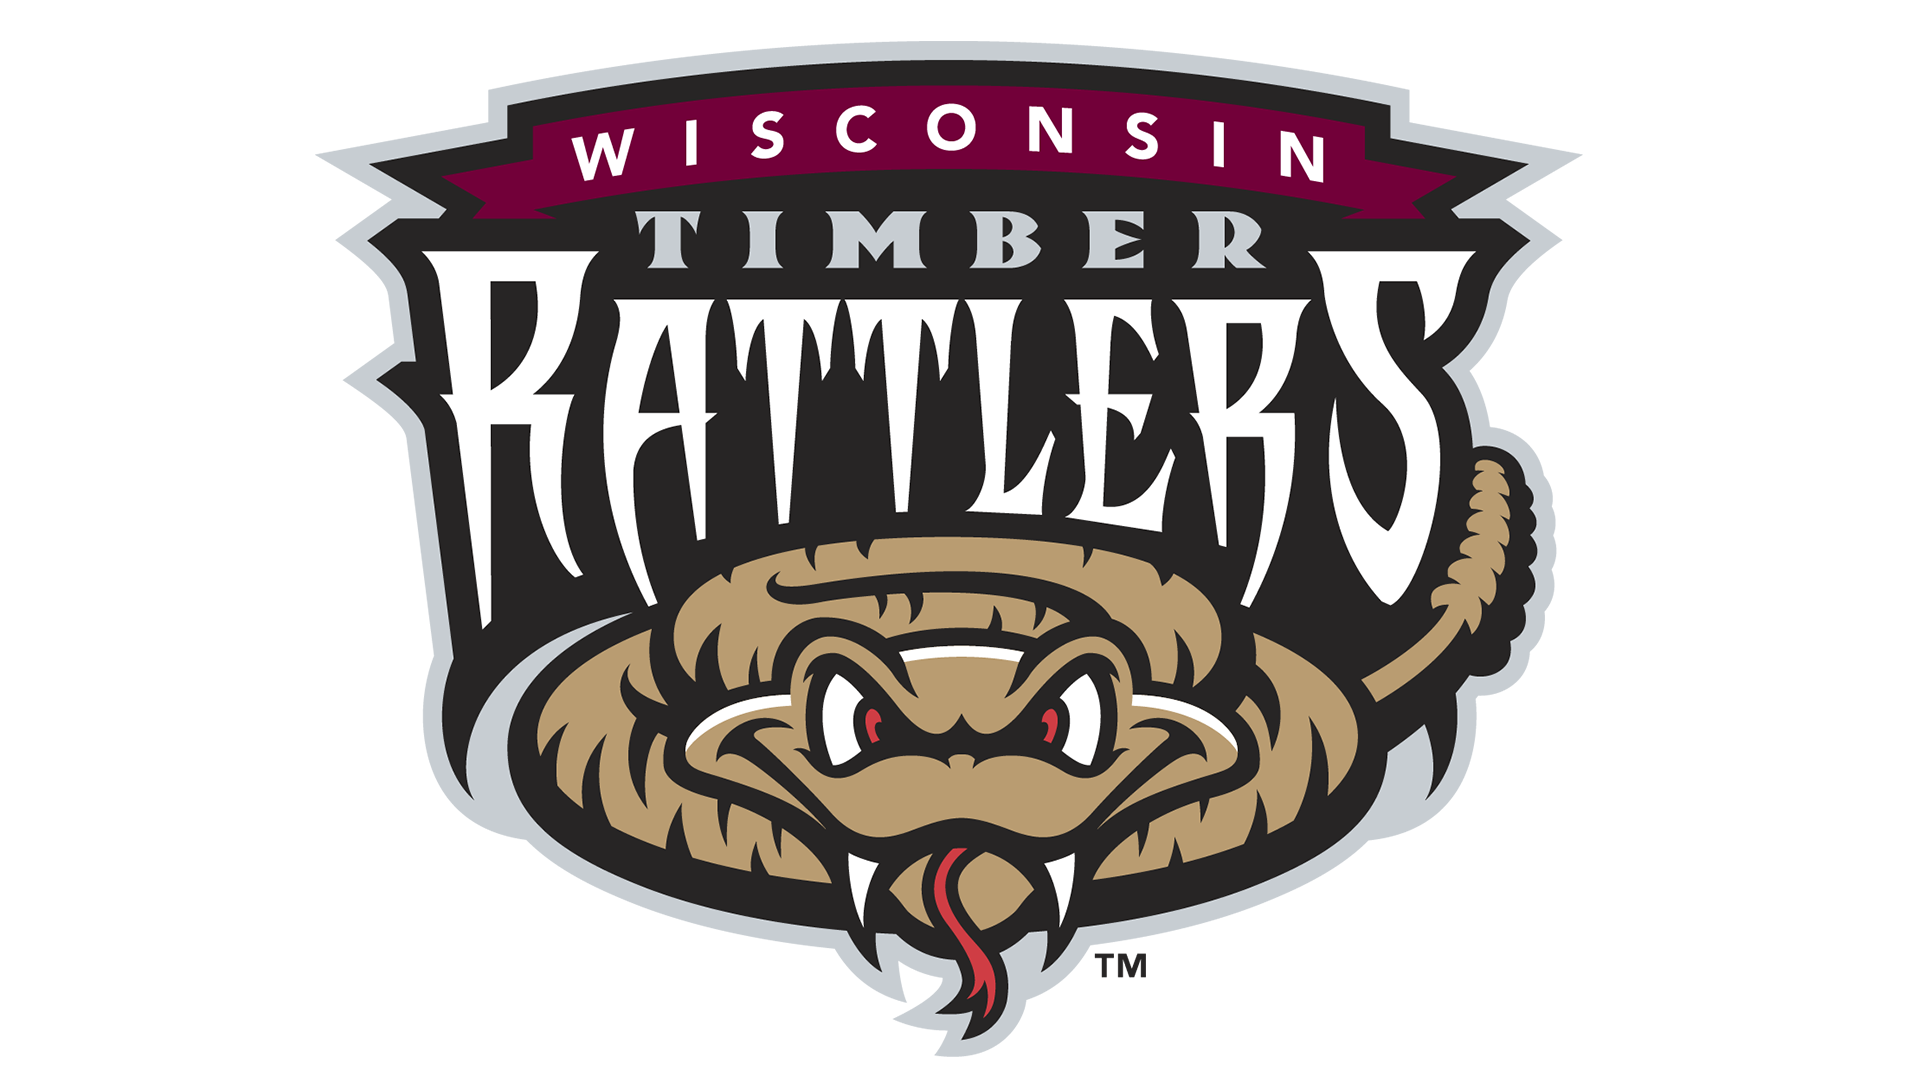 Meaning Wisconsin Timber Rattlers logo and symbol | history